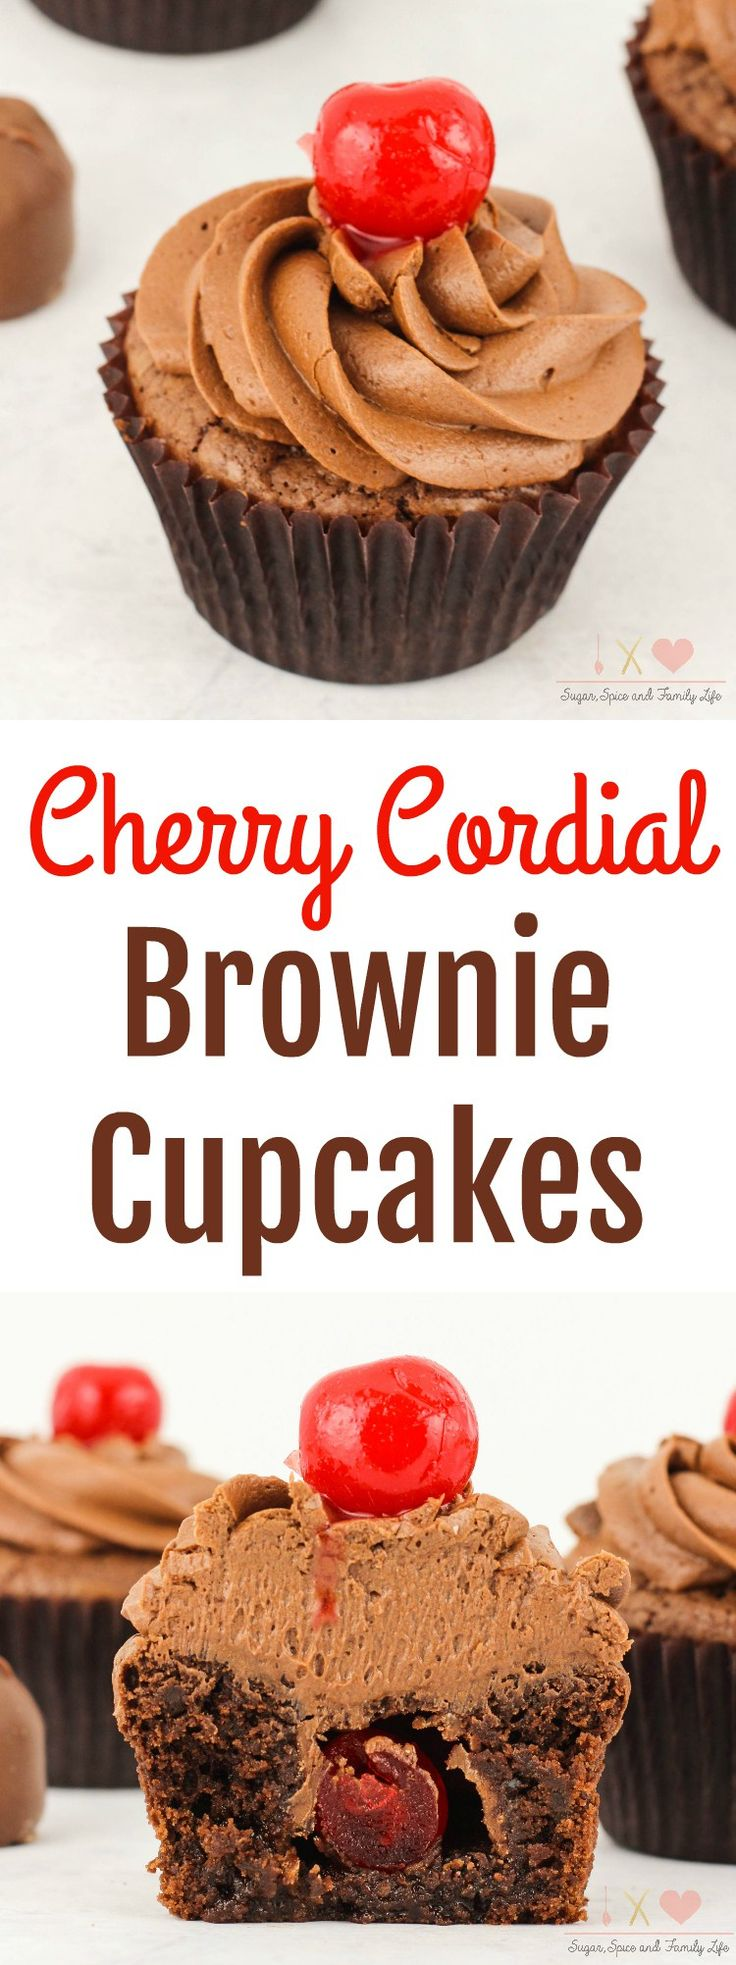 Cherry Cordial Brownie Cupcakes are a delicious chocolate cherry dessert. Each chocolate brownie cupcake is stuffed with a cherry cordial. Then coveredwith chocolate frosting and a maraschino cherry on top. Anyone who enjoys chocolate covered cherries will love this cherry brownie dessert. -  Cherry Cordial Brownie Cupcakes Recipe from Sugar, Spice and Family Life #cherry #chocolate #brownies #cupcakes #chocolatefrosting #cherrycordial #chocolatecoveredcherries #dessert #recipe